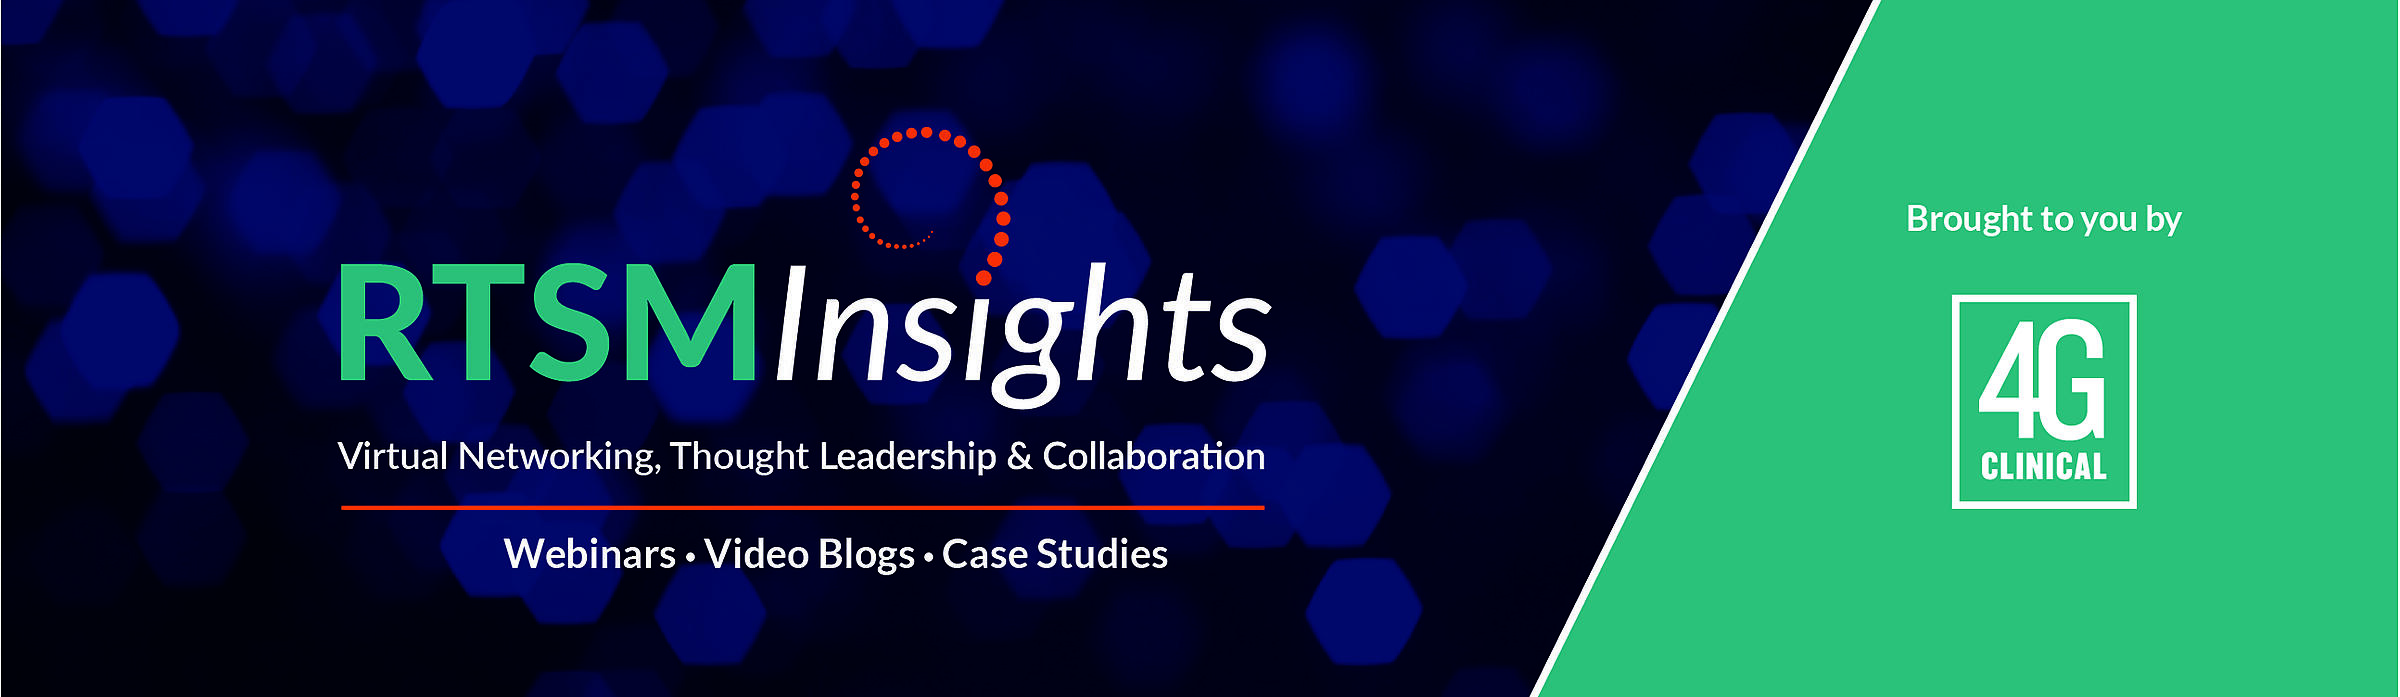 4g-rtsm-insights-virtual-masthead-01